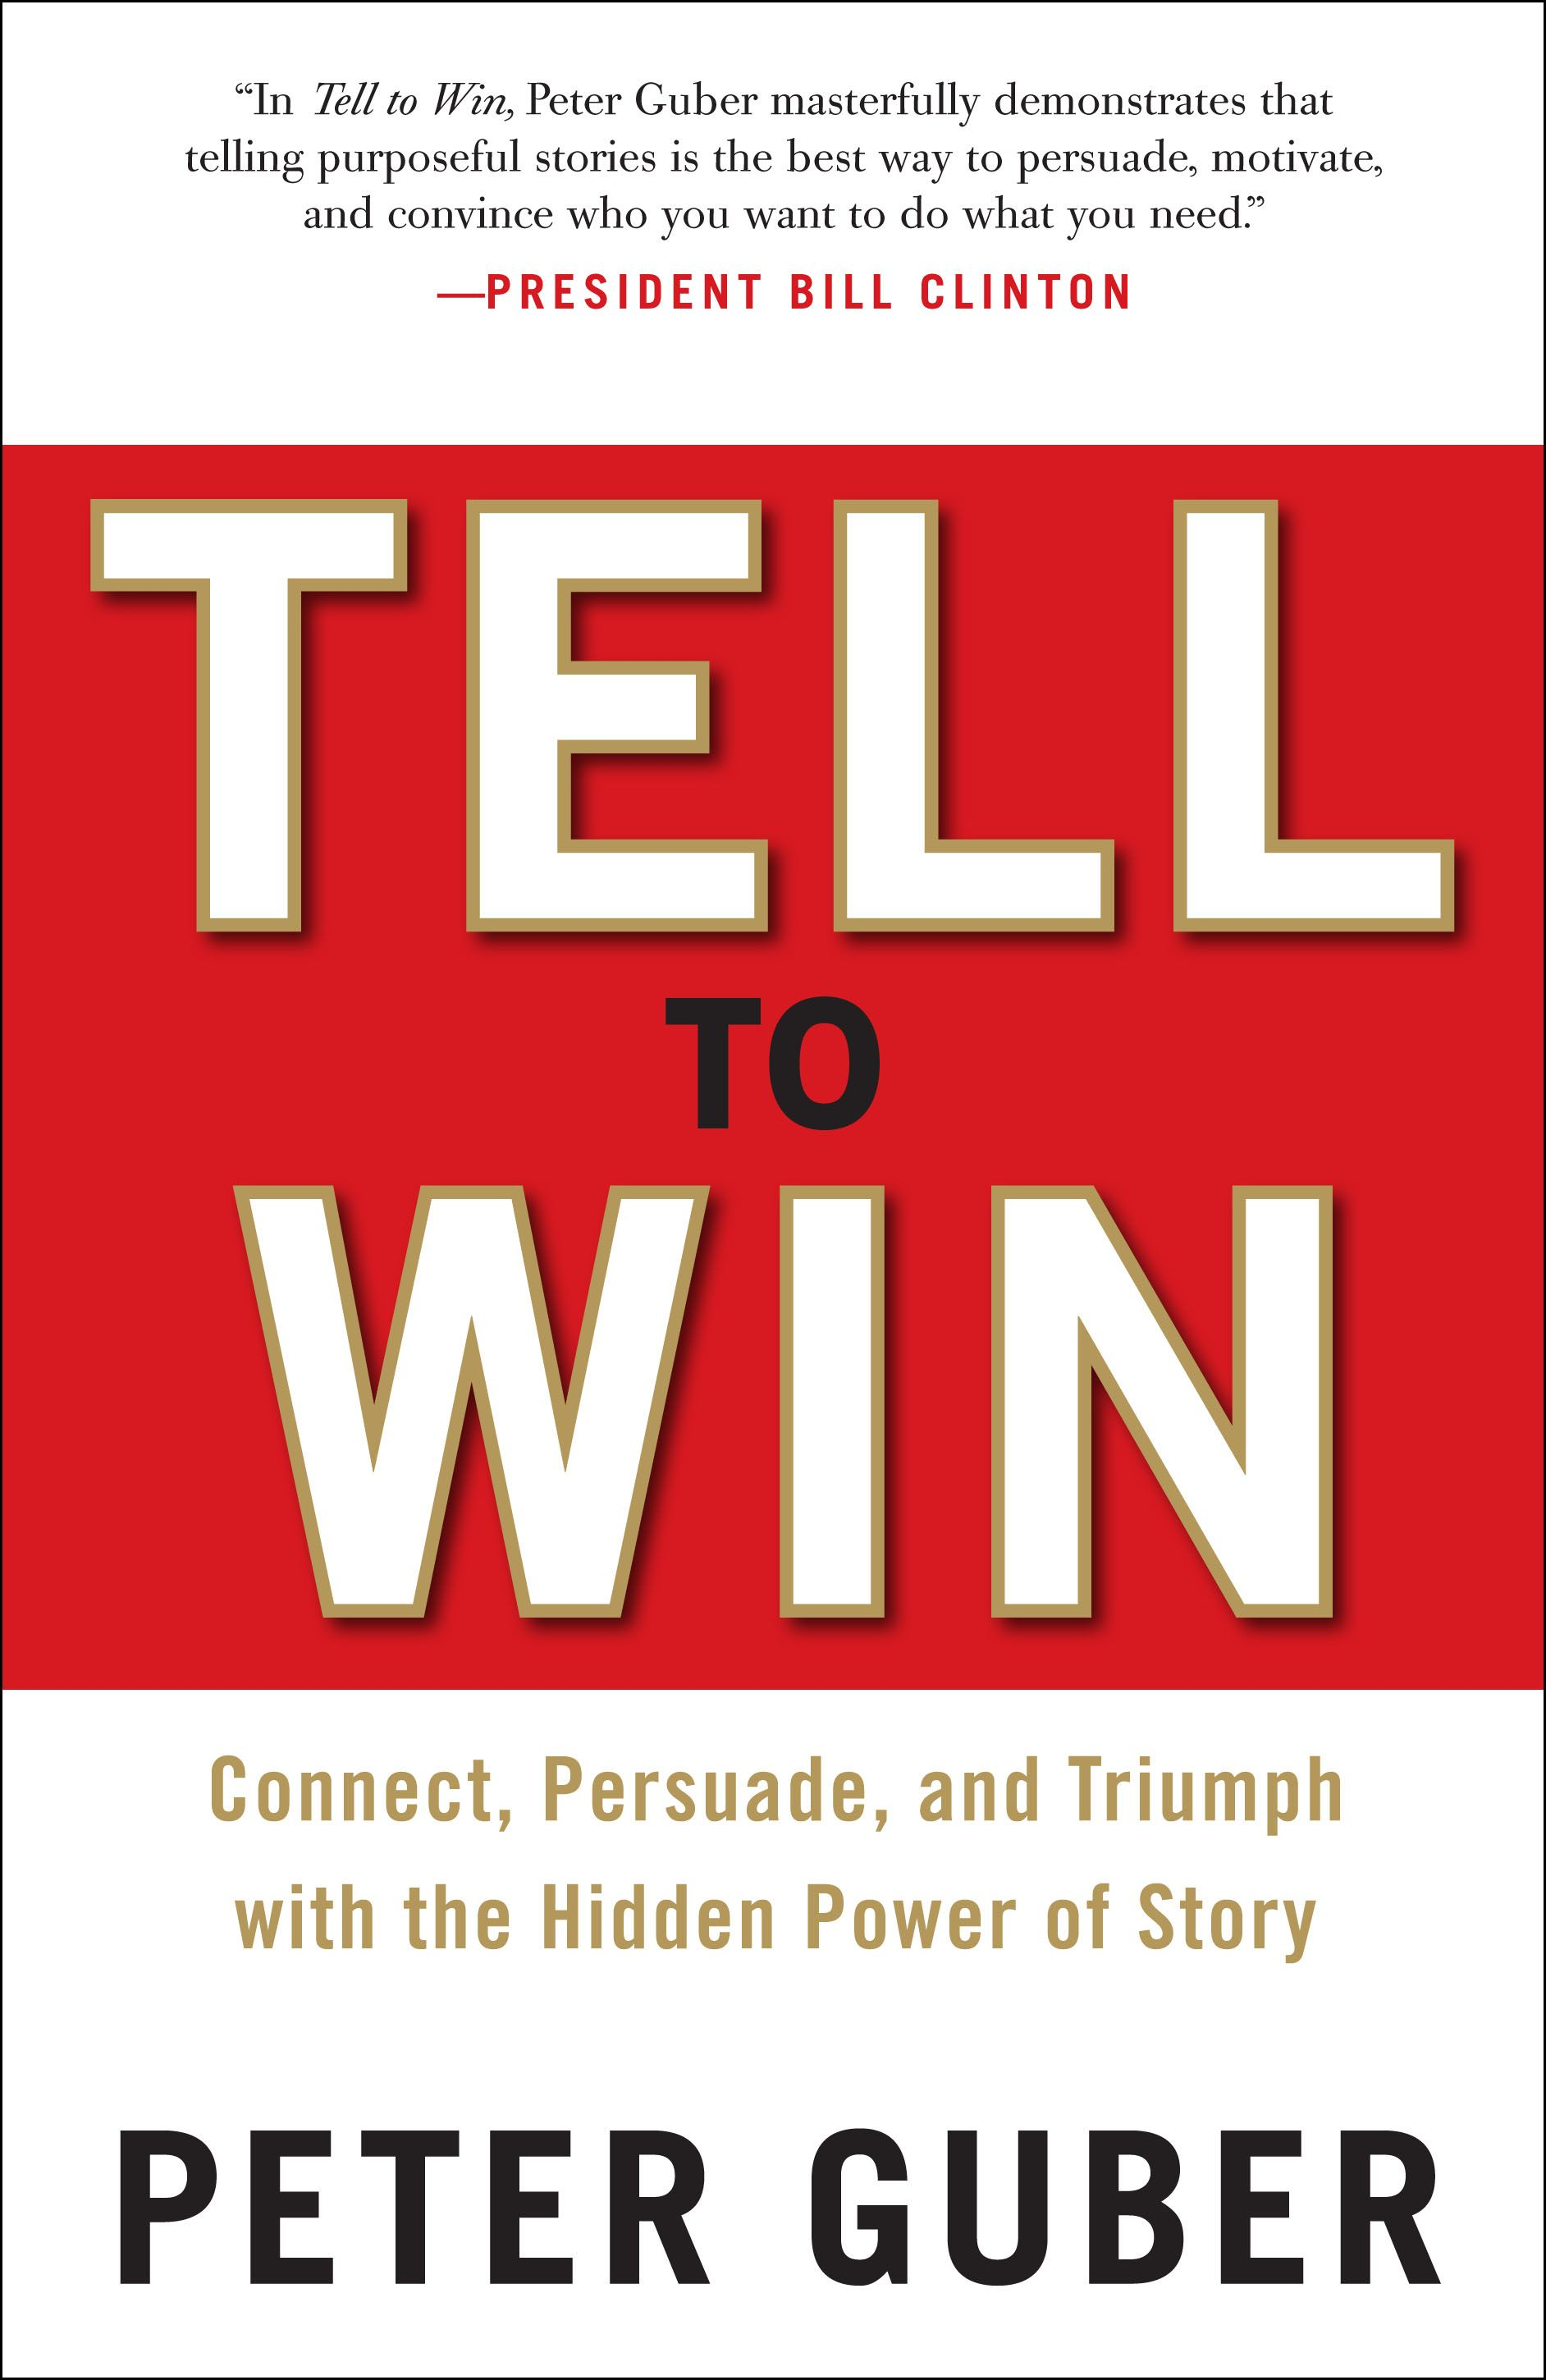 Storytelling is a uniquely powerful form of persuasive jujitsu. #nowreading #storytelling tell-to-win.jpg